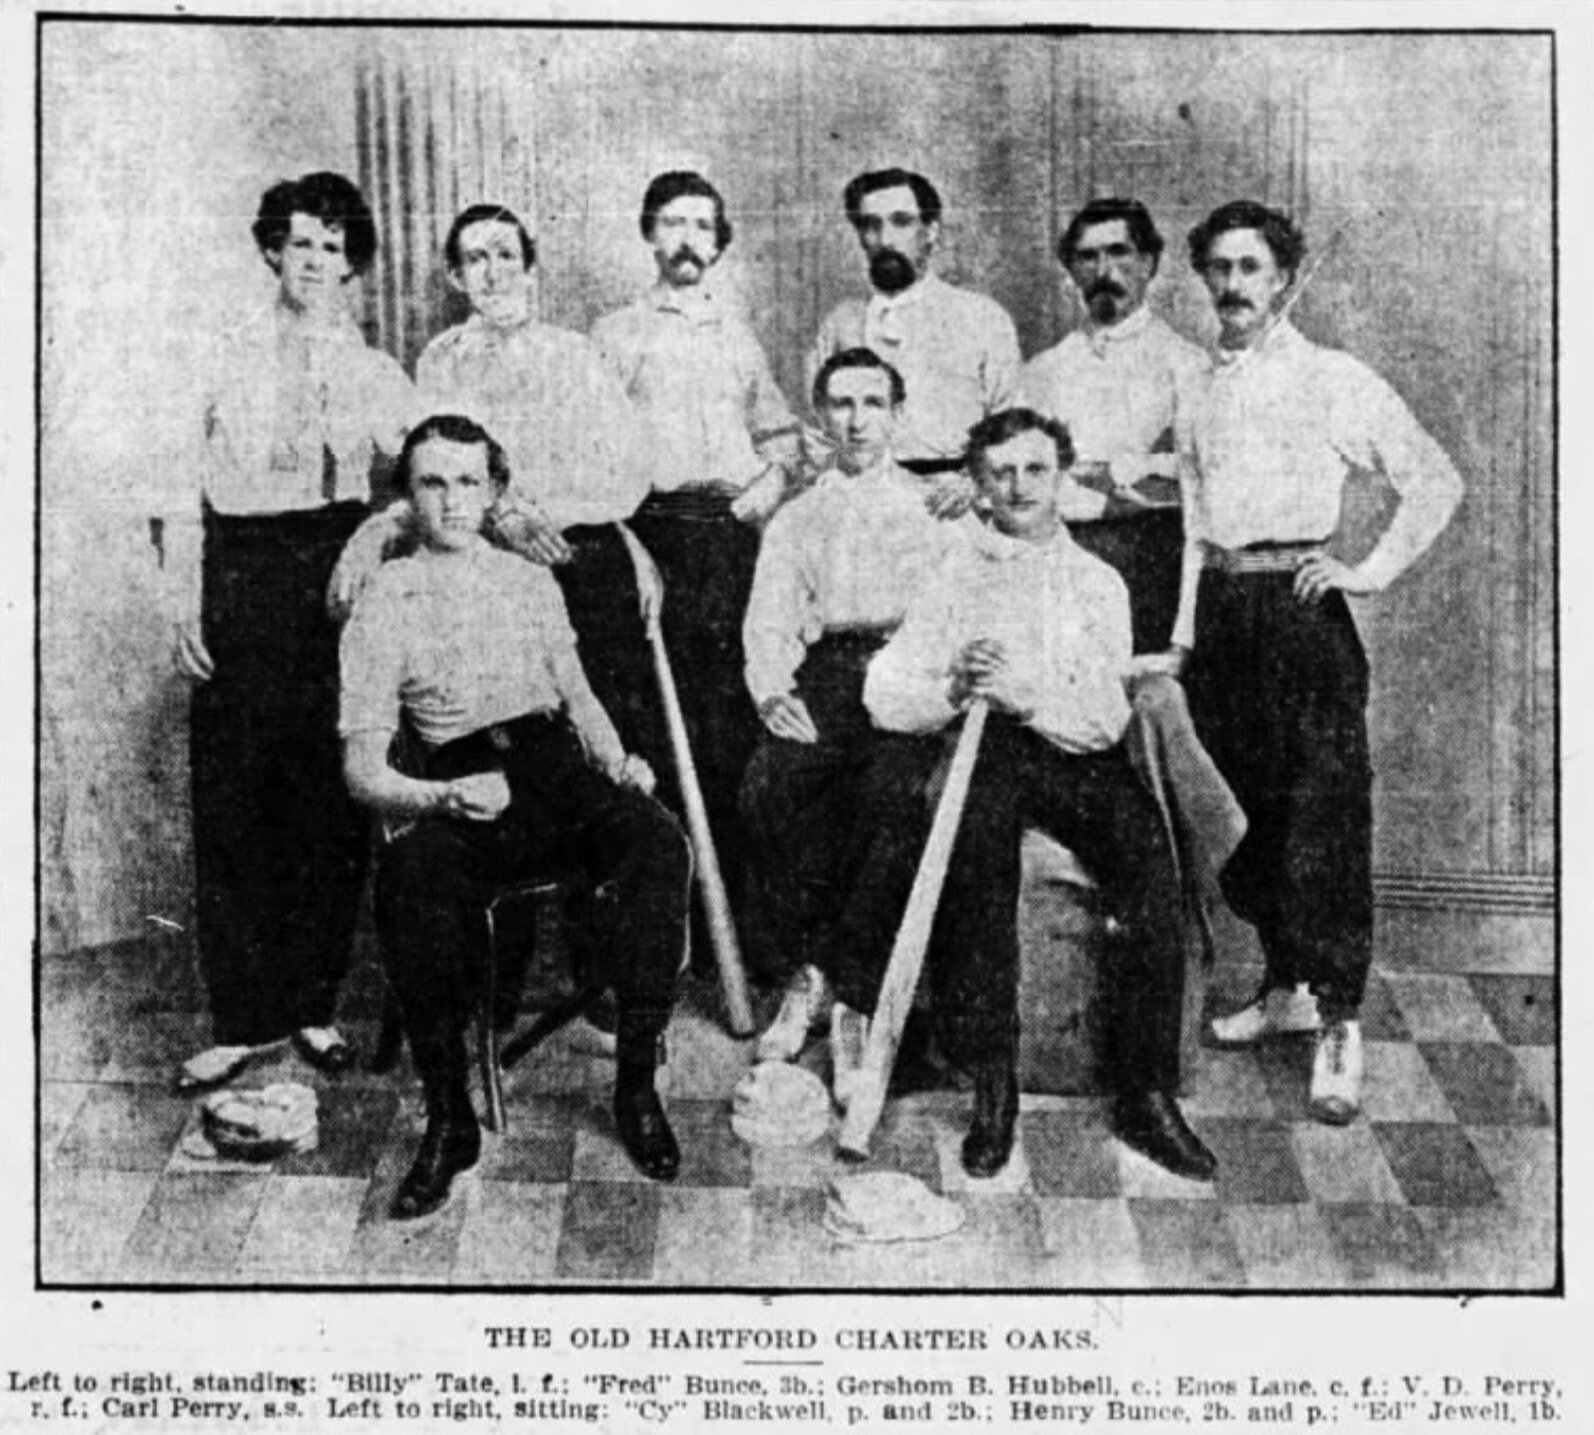 The Charter Oak Base Ball Club Of Hartford